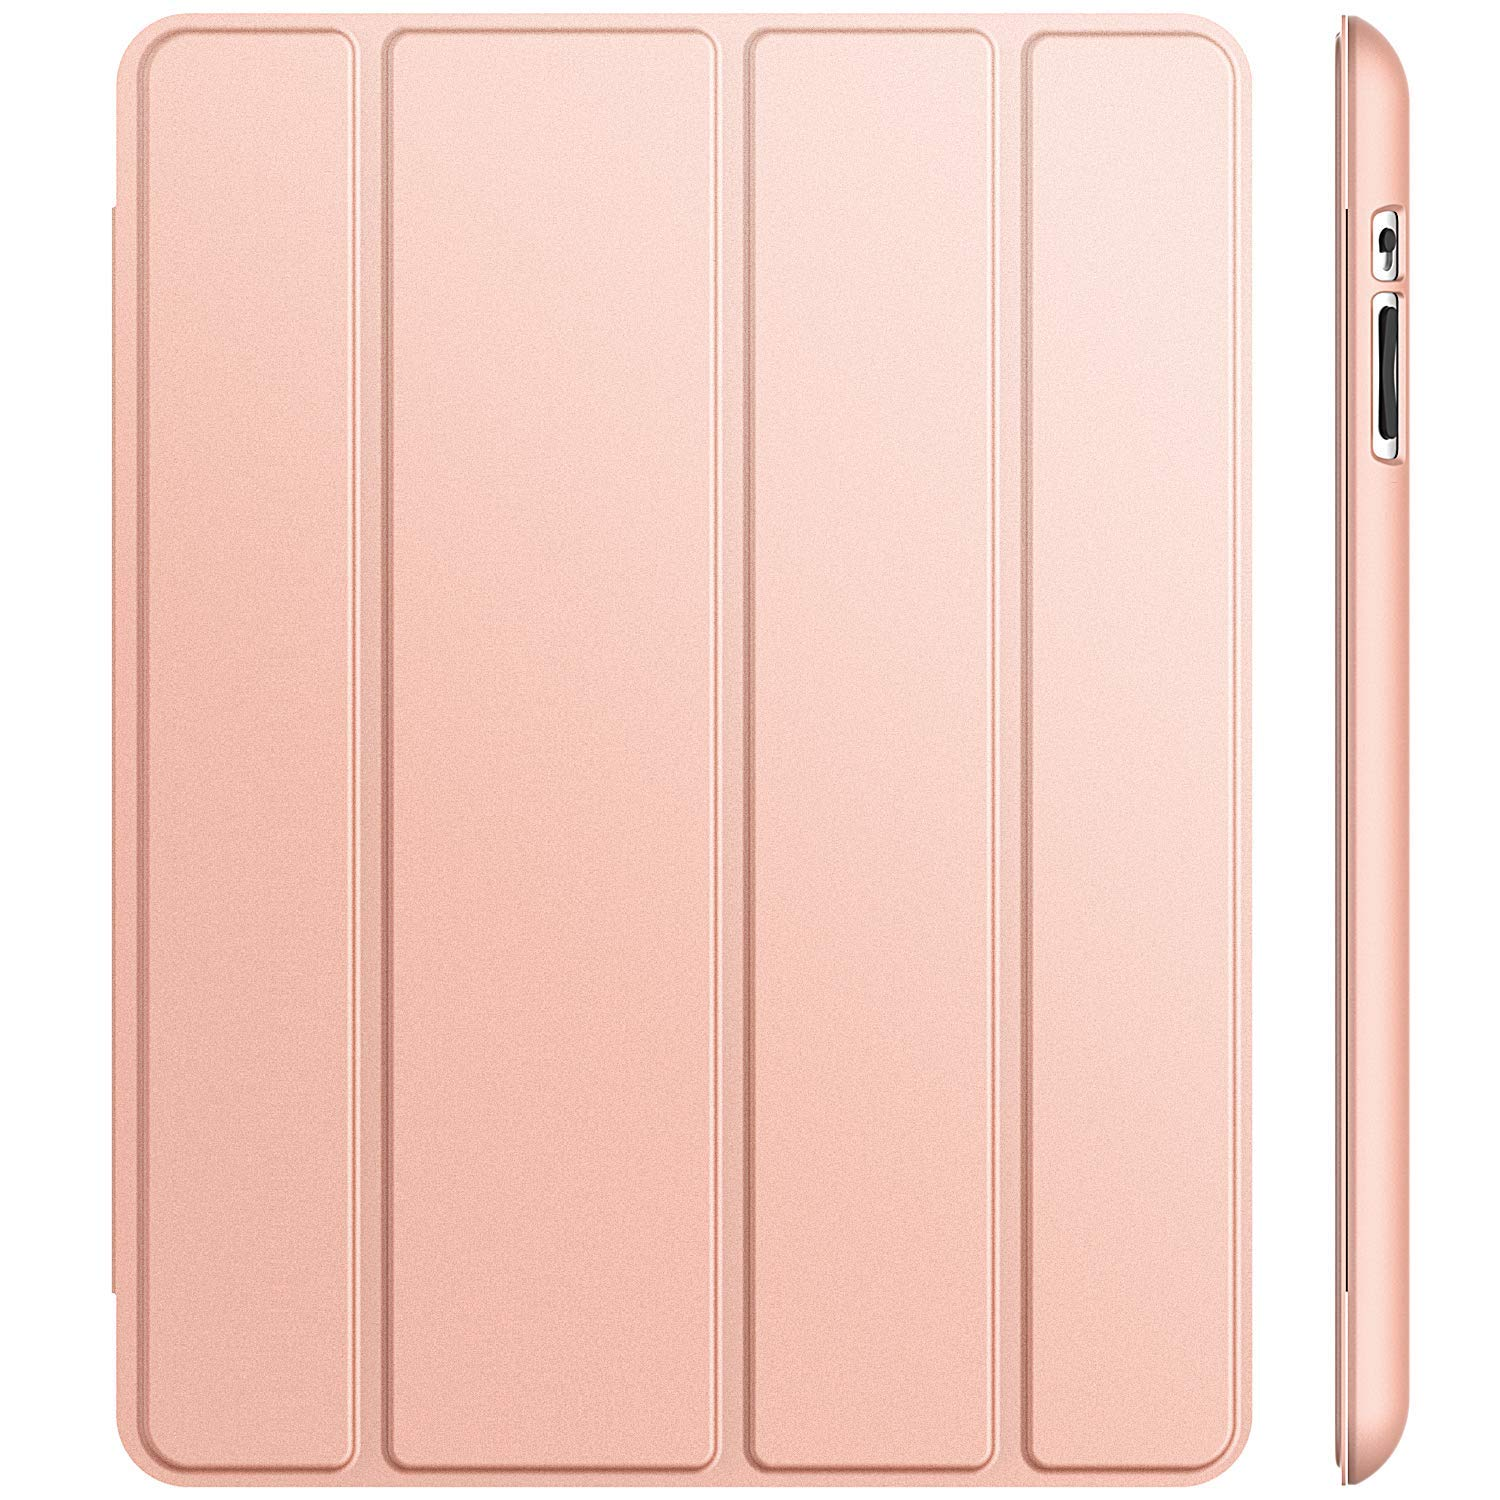 ETech Case for iPad 2 3 4 (Old Model) Smart Cover with Auto Sleep/Wake, Rose Gold